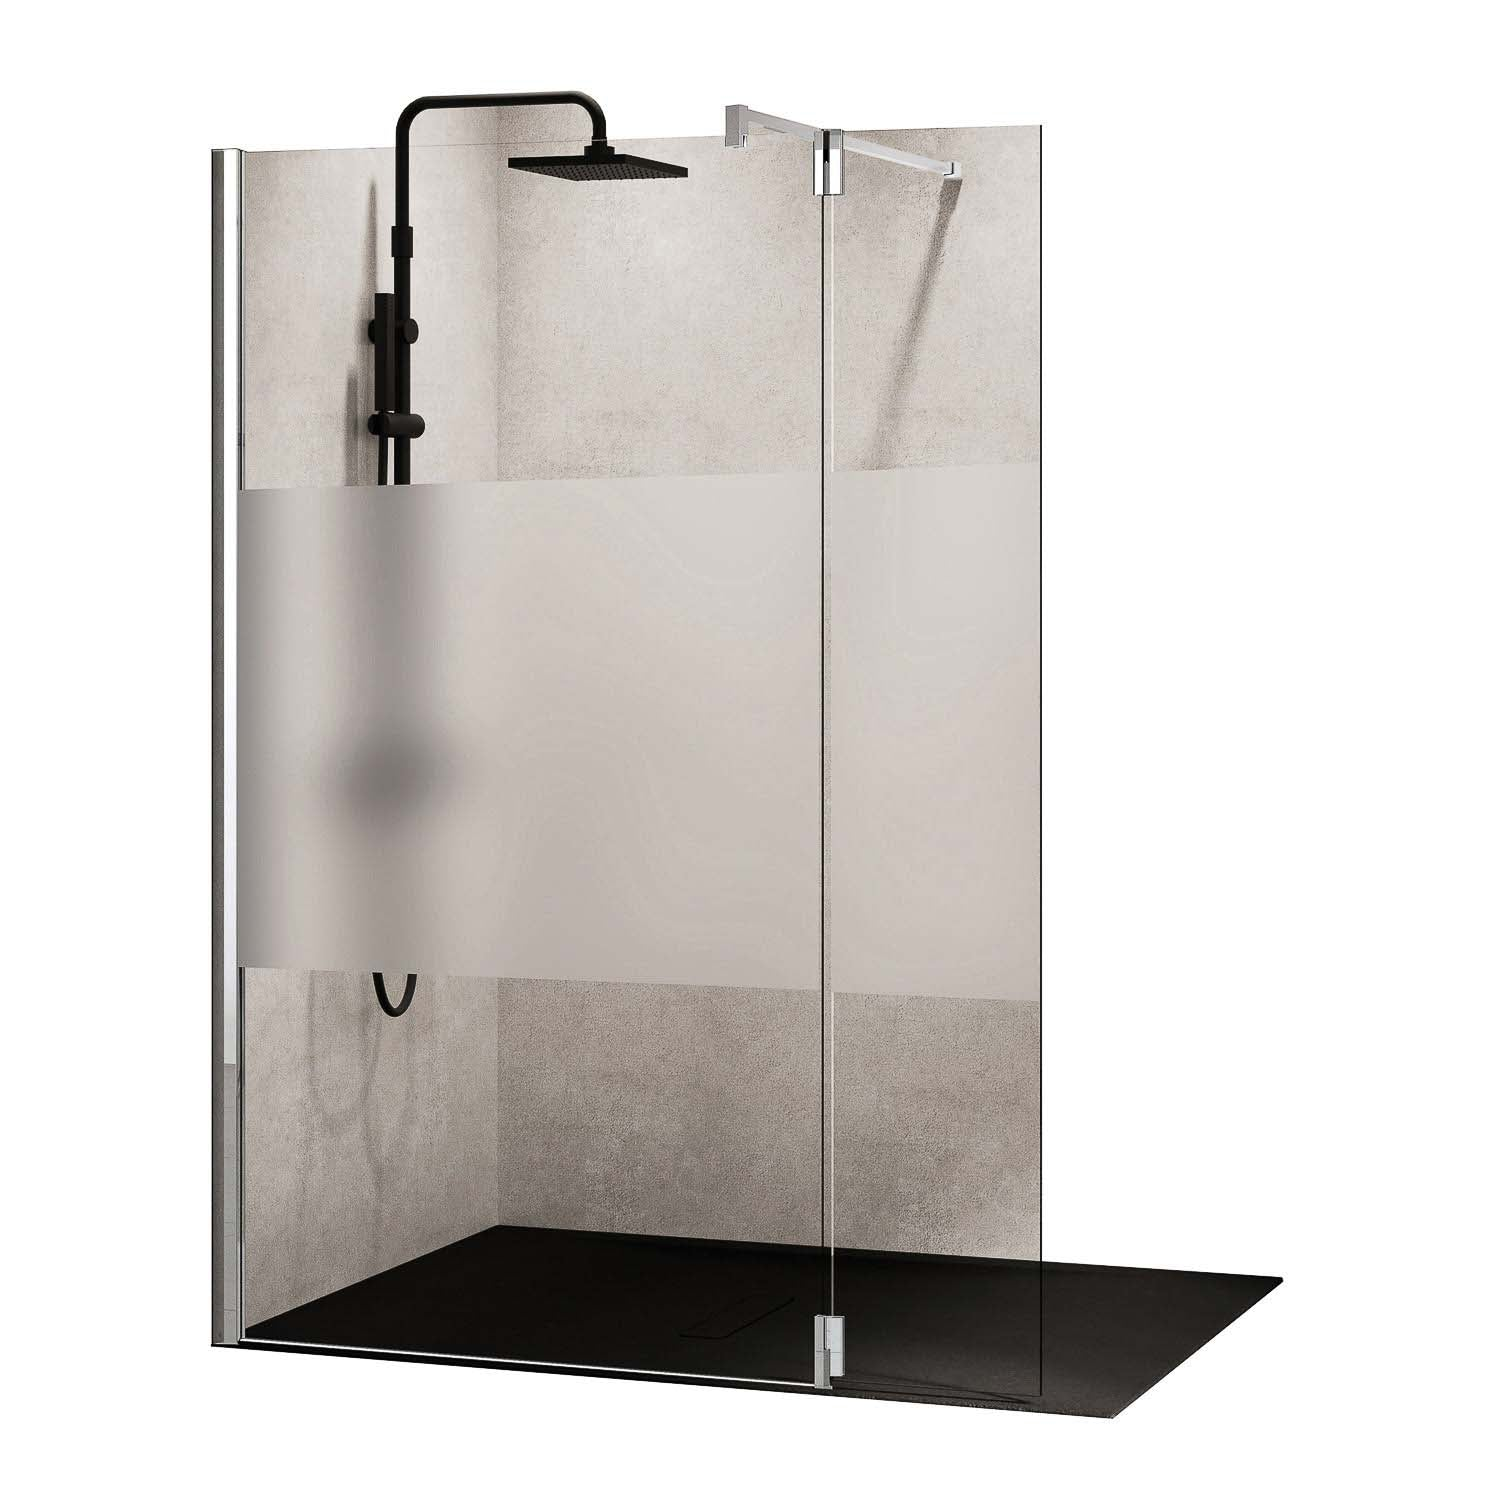 1170-1200mm Ergo Wet Room Screen Satin Band Glass with a chrome finish on a white background